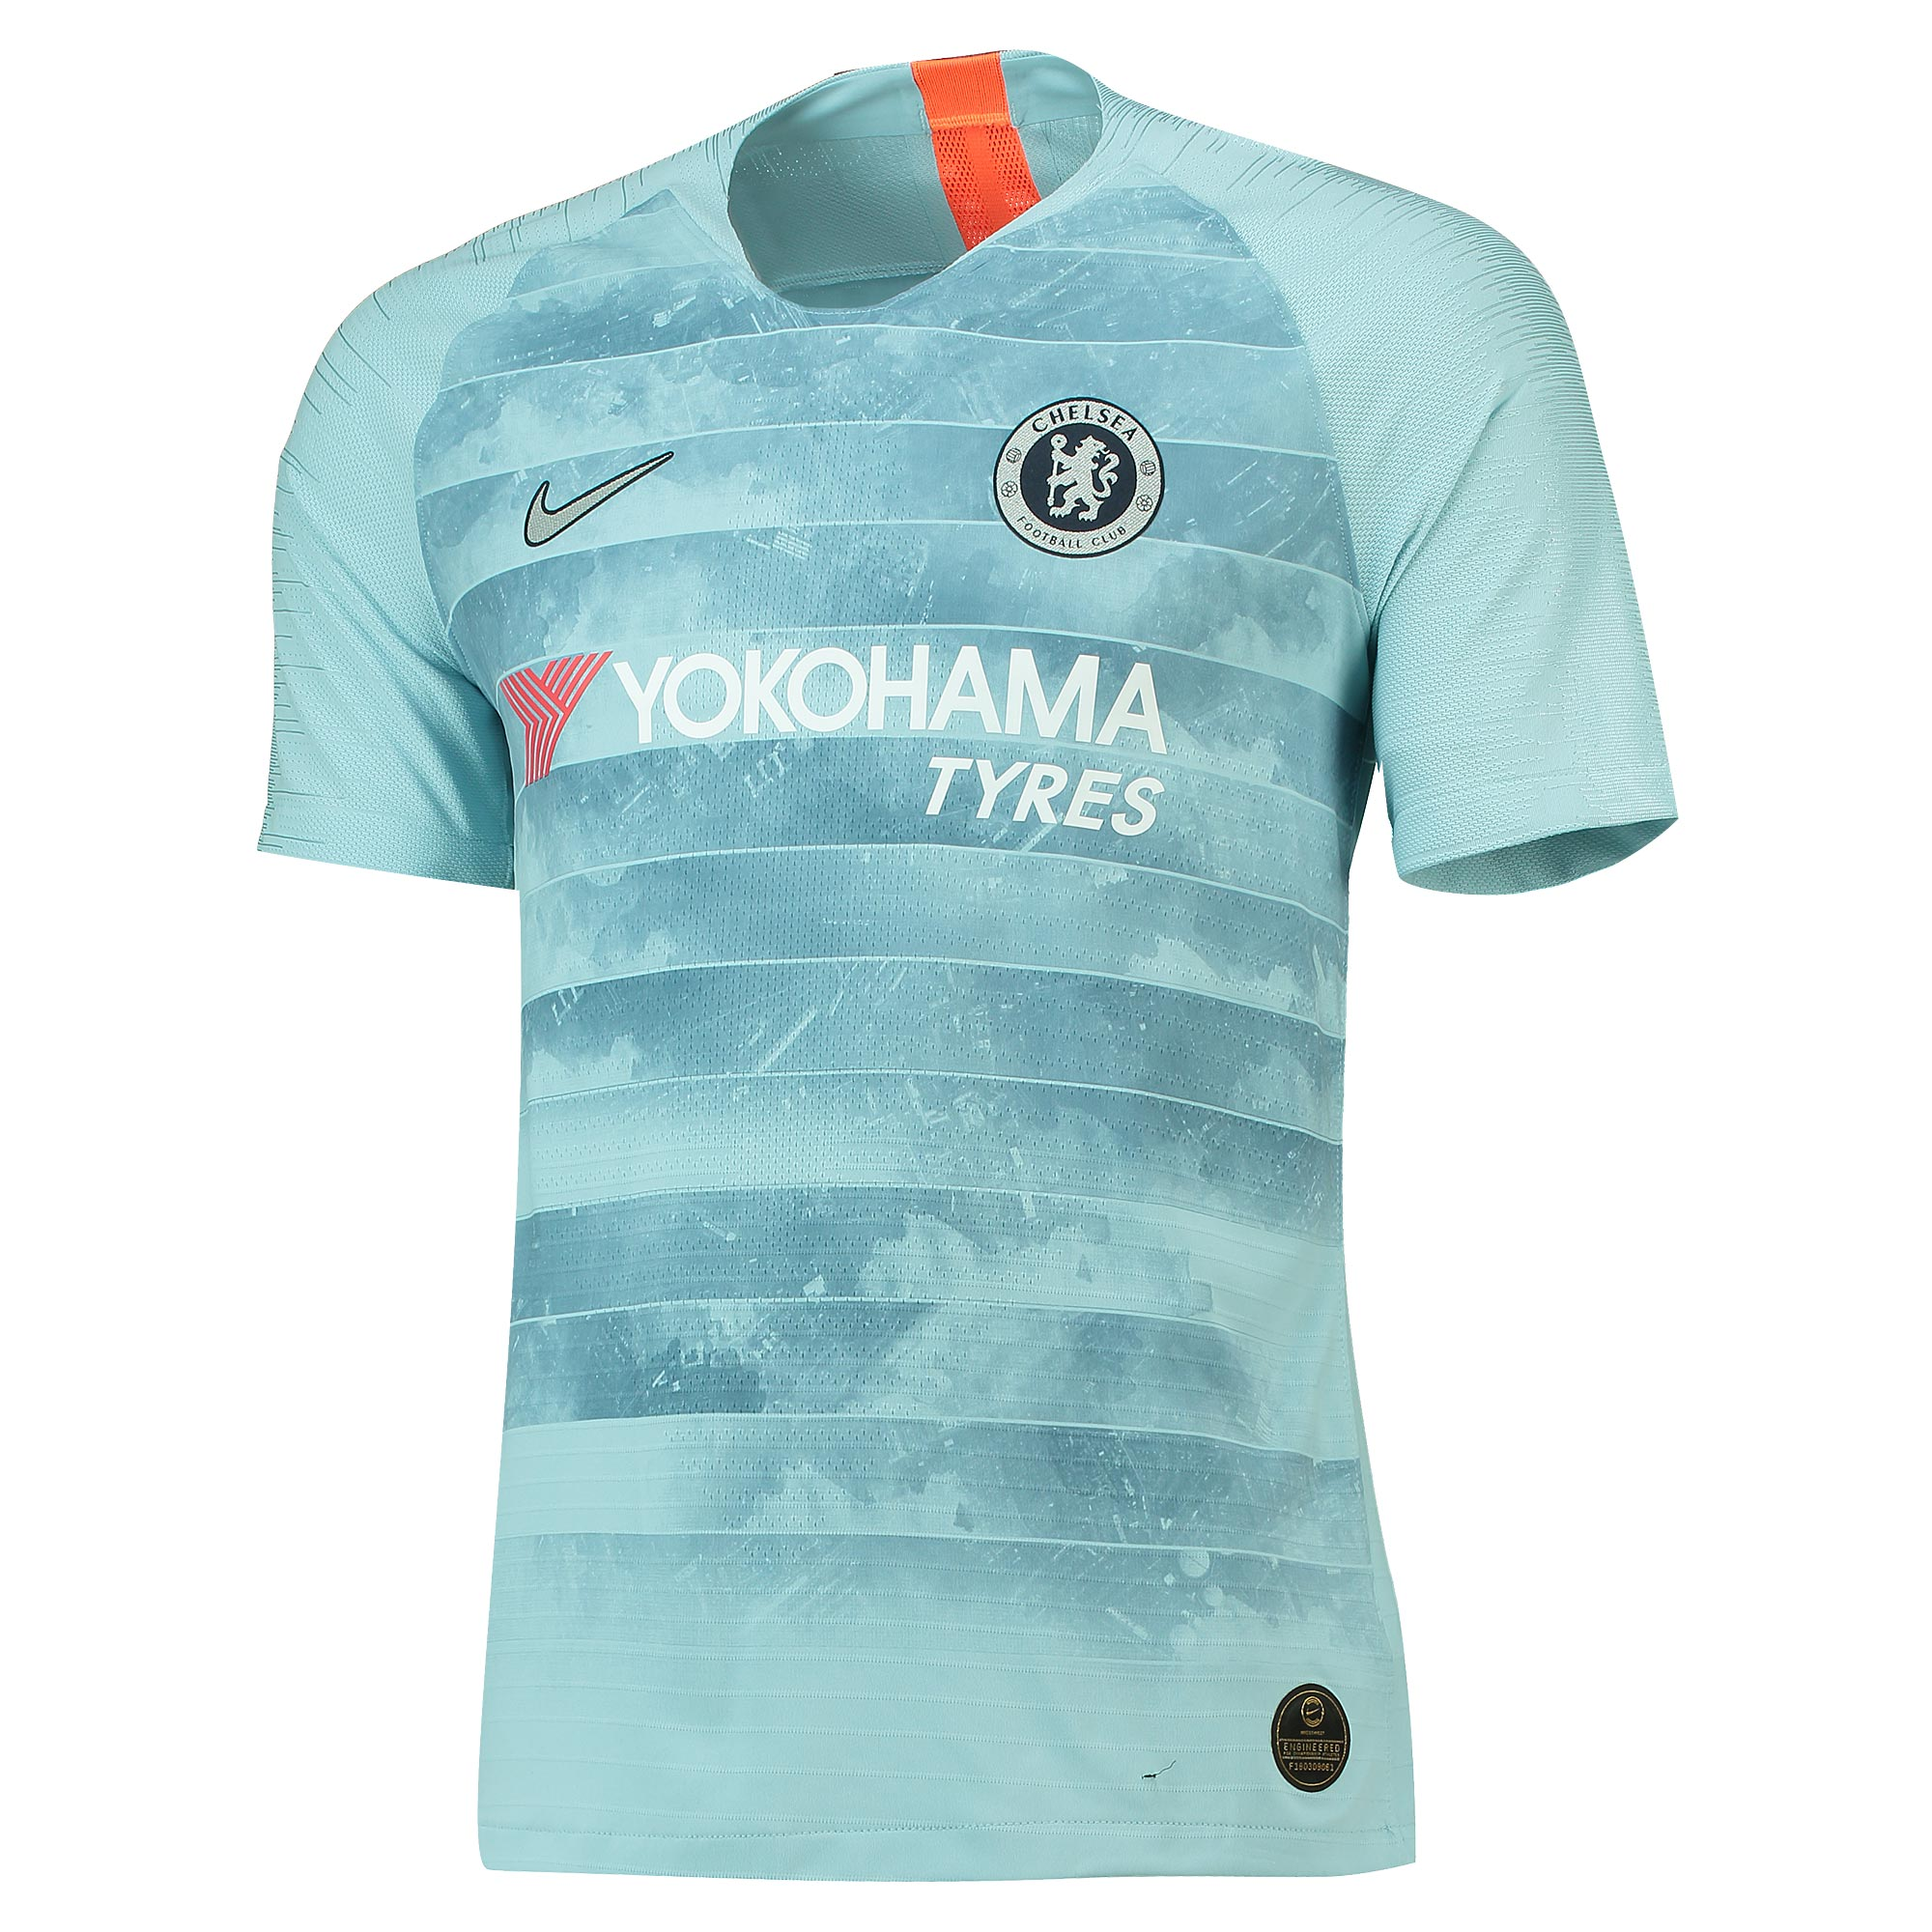 ... Chelsea 2018-19 Nike Away Kit · Click to enlarge image  chelsea 18 19 nike third kit a.jpg ... dc904ba36